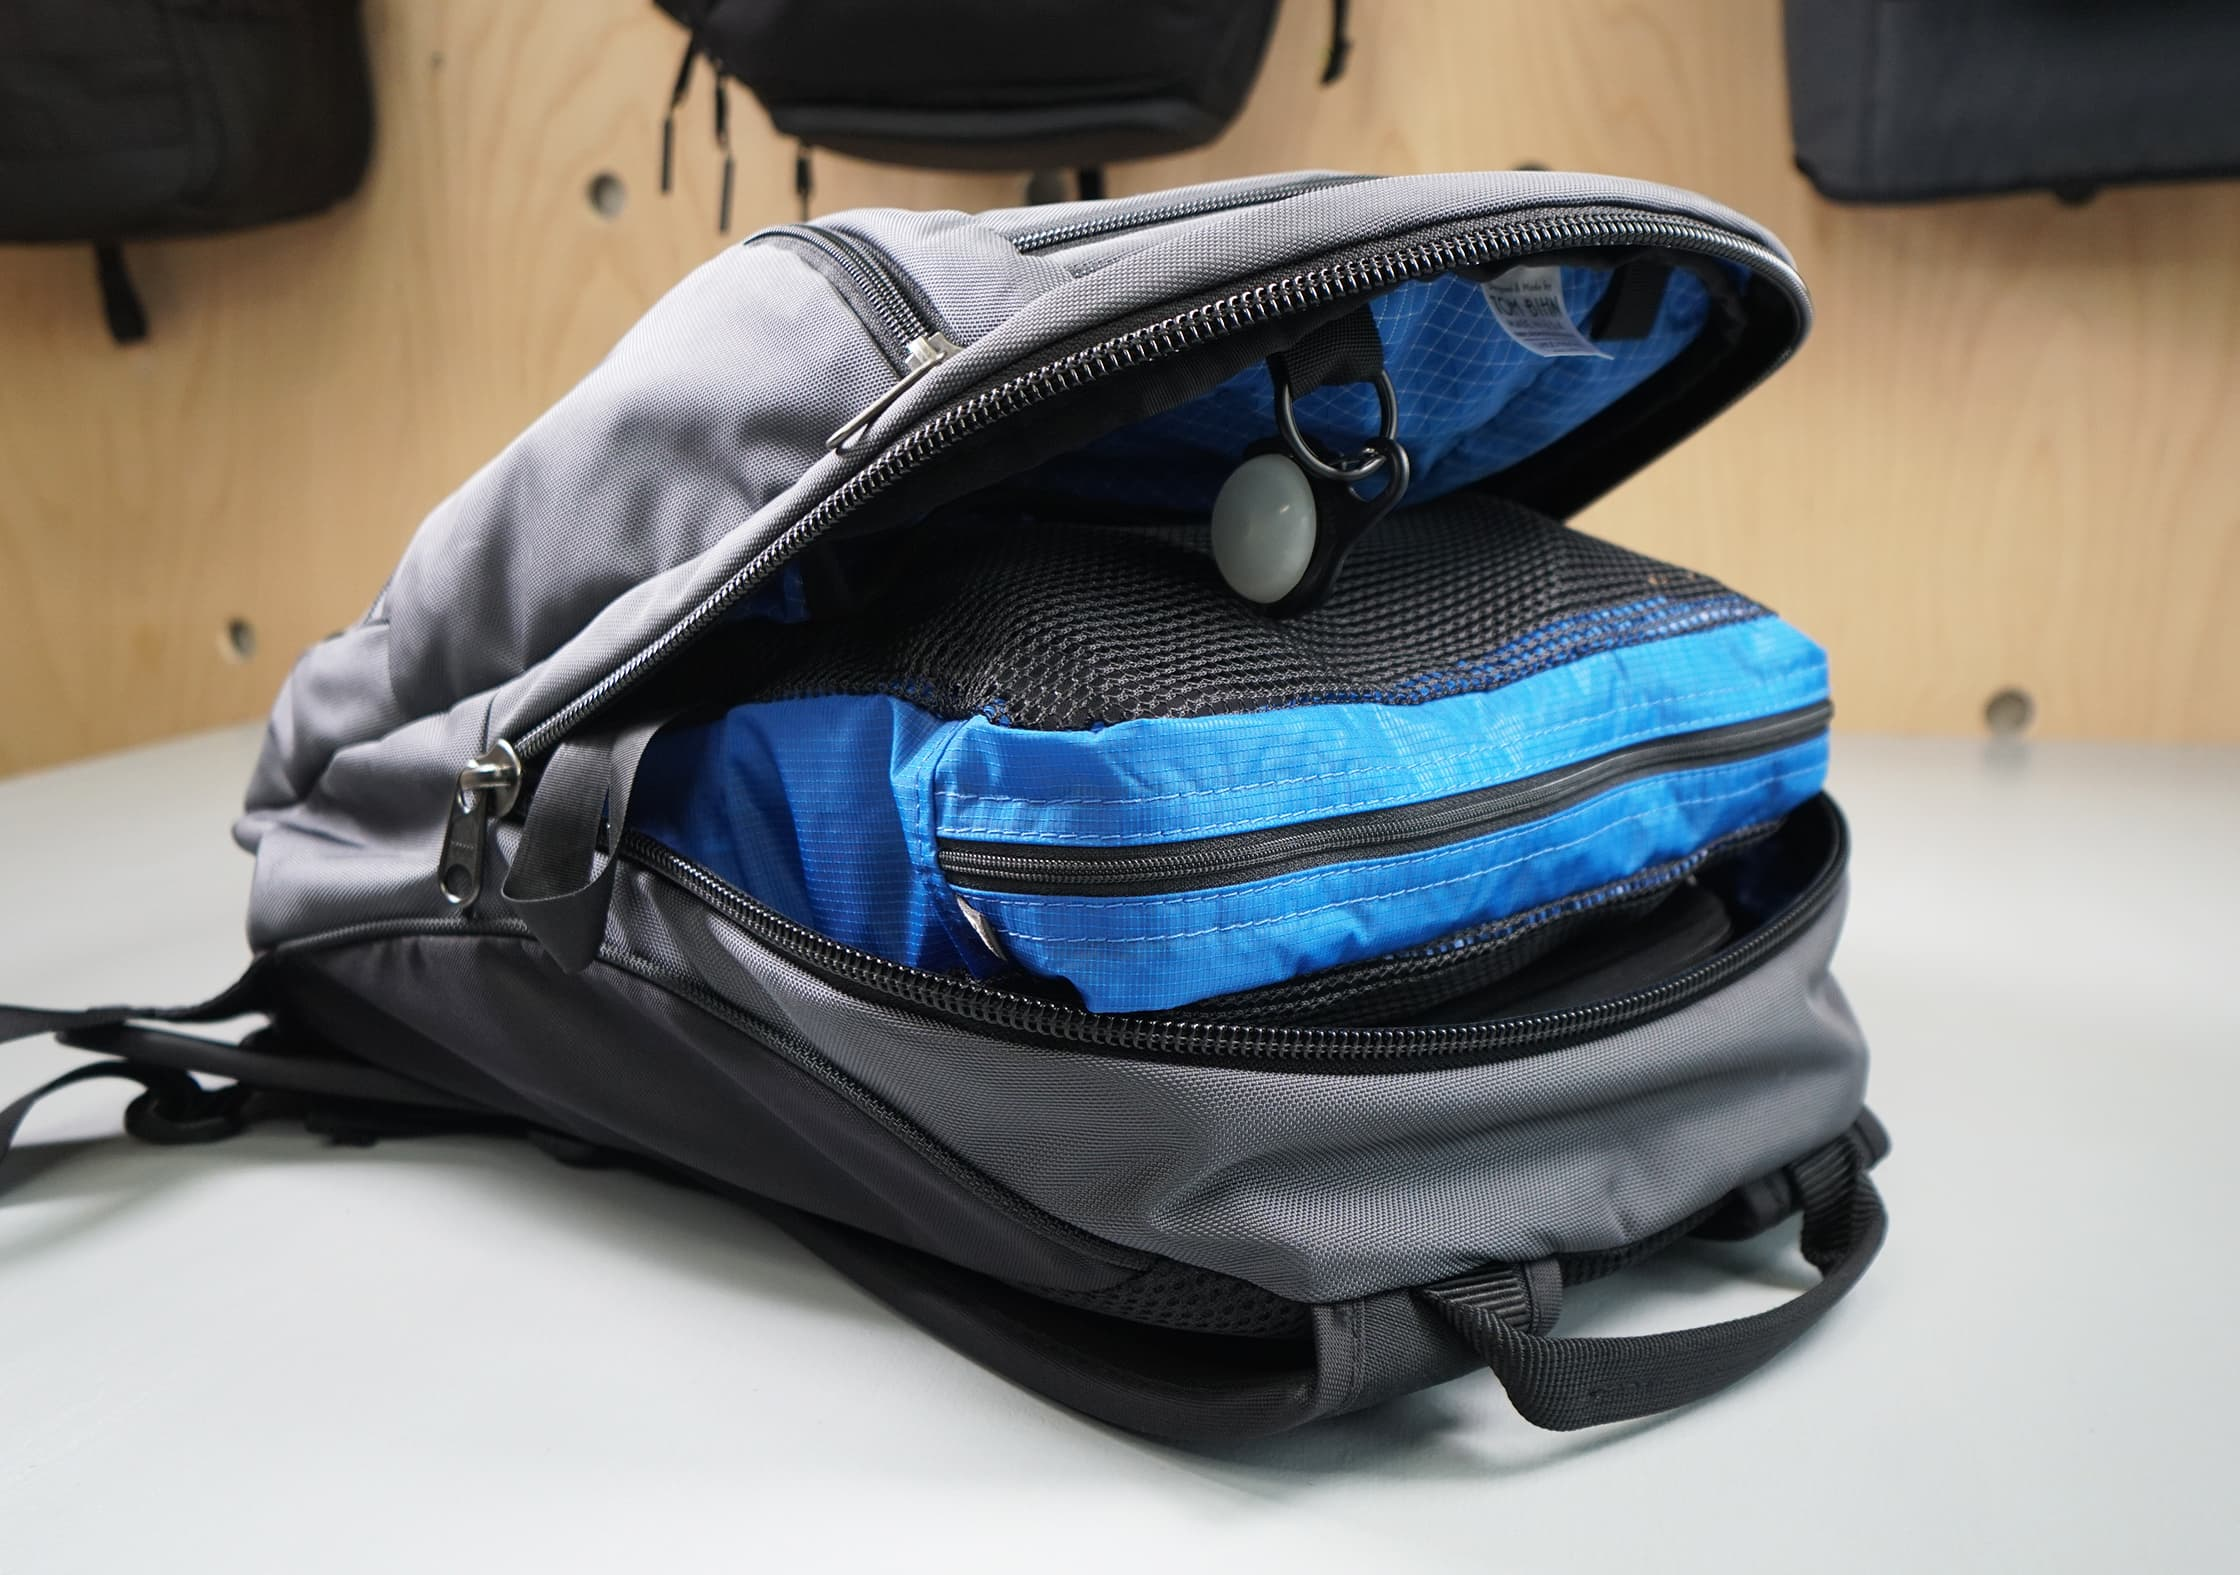 Tom Bihn Synapse 25 Interior Packed